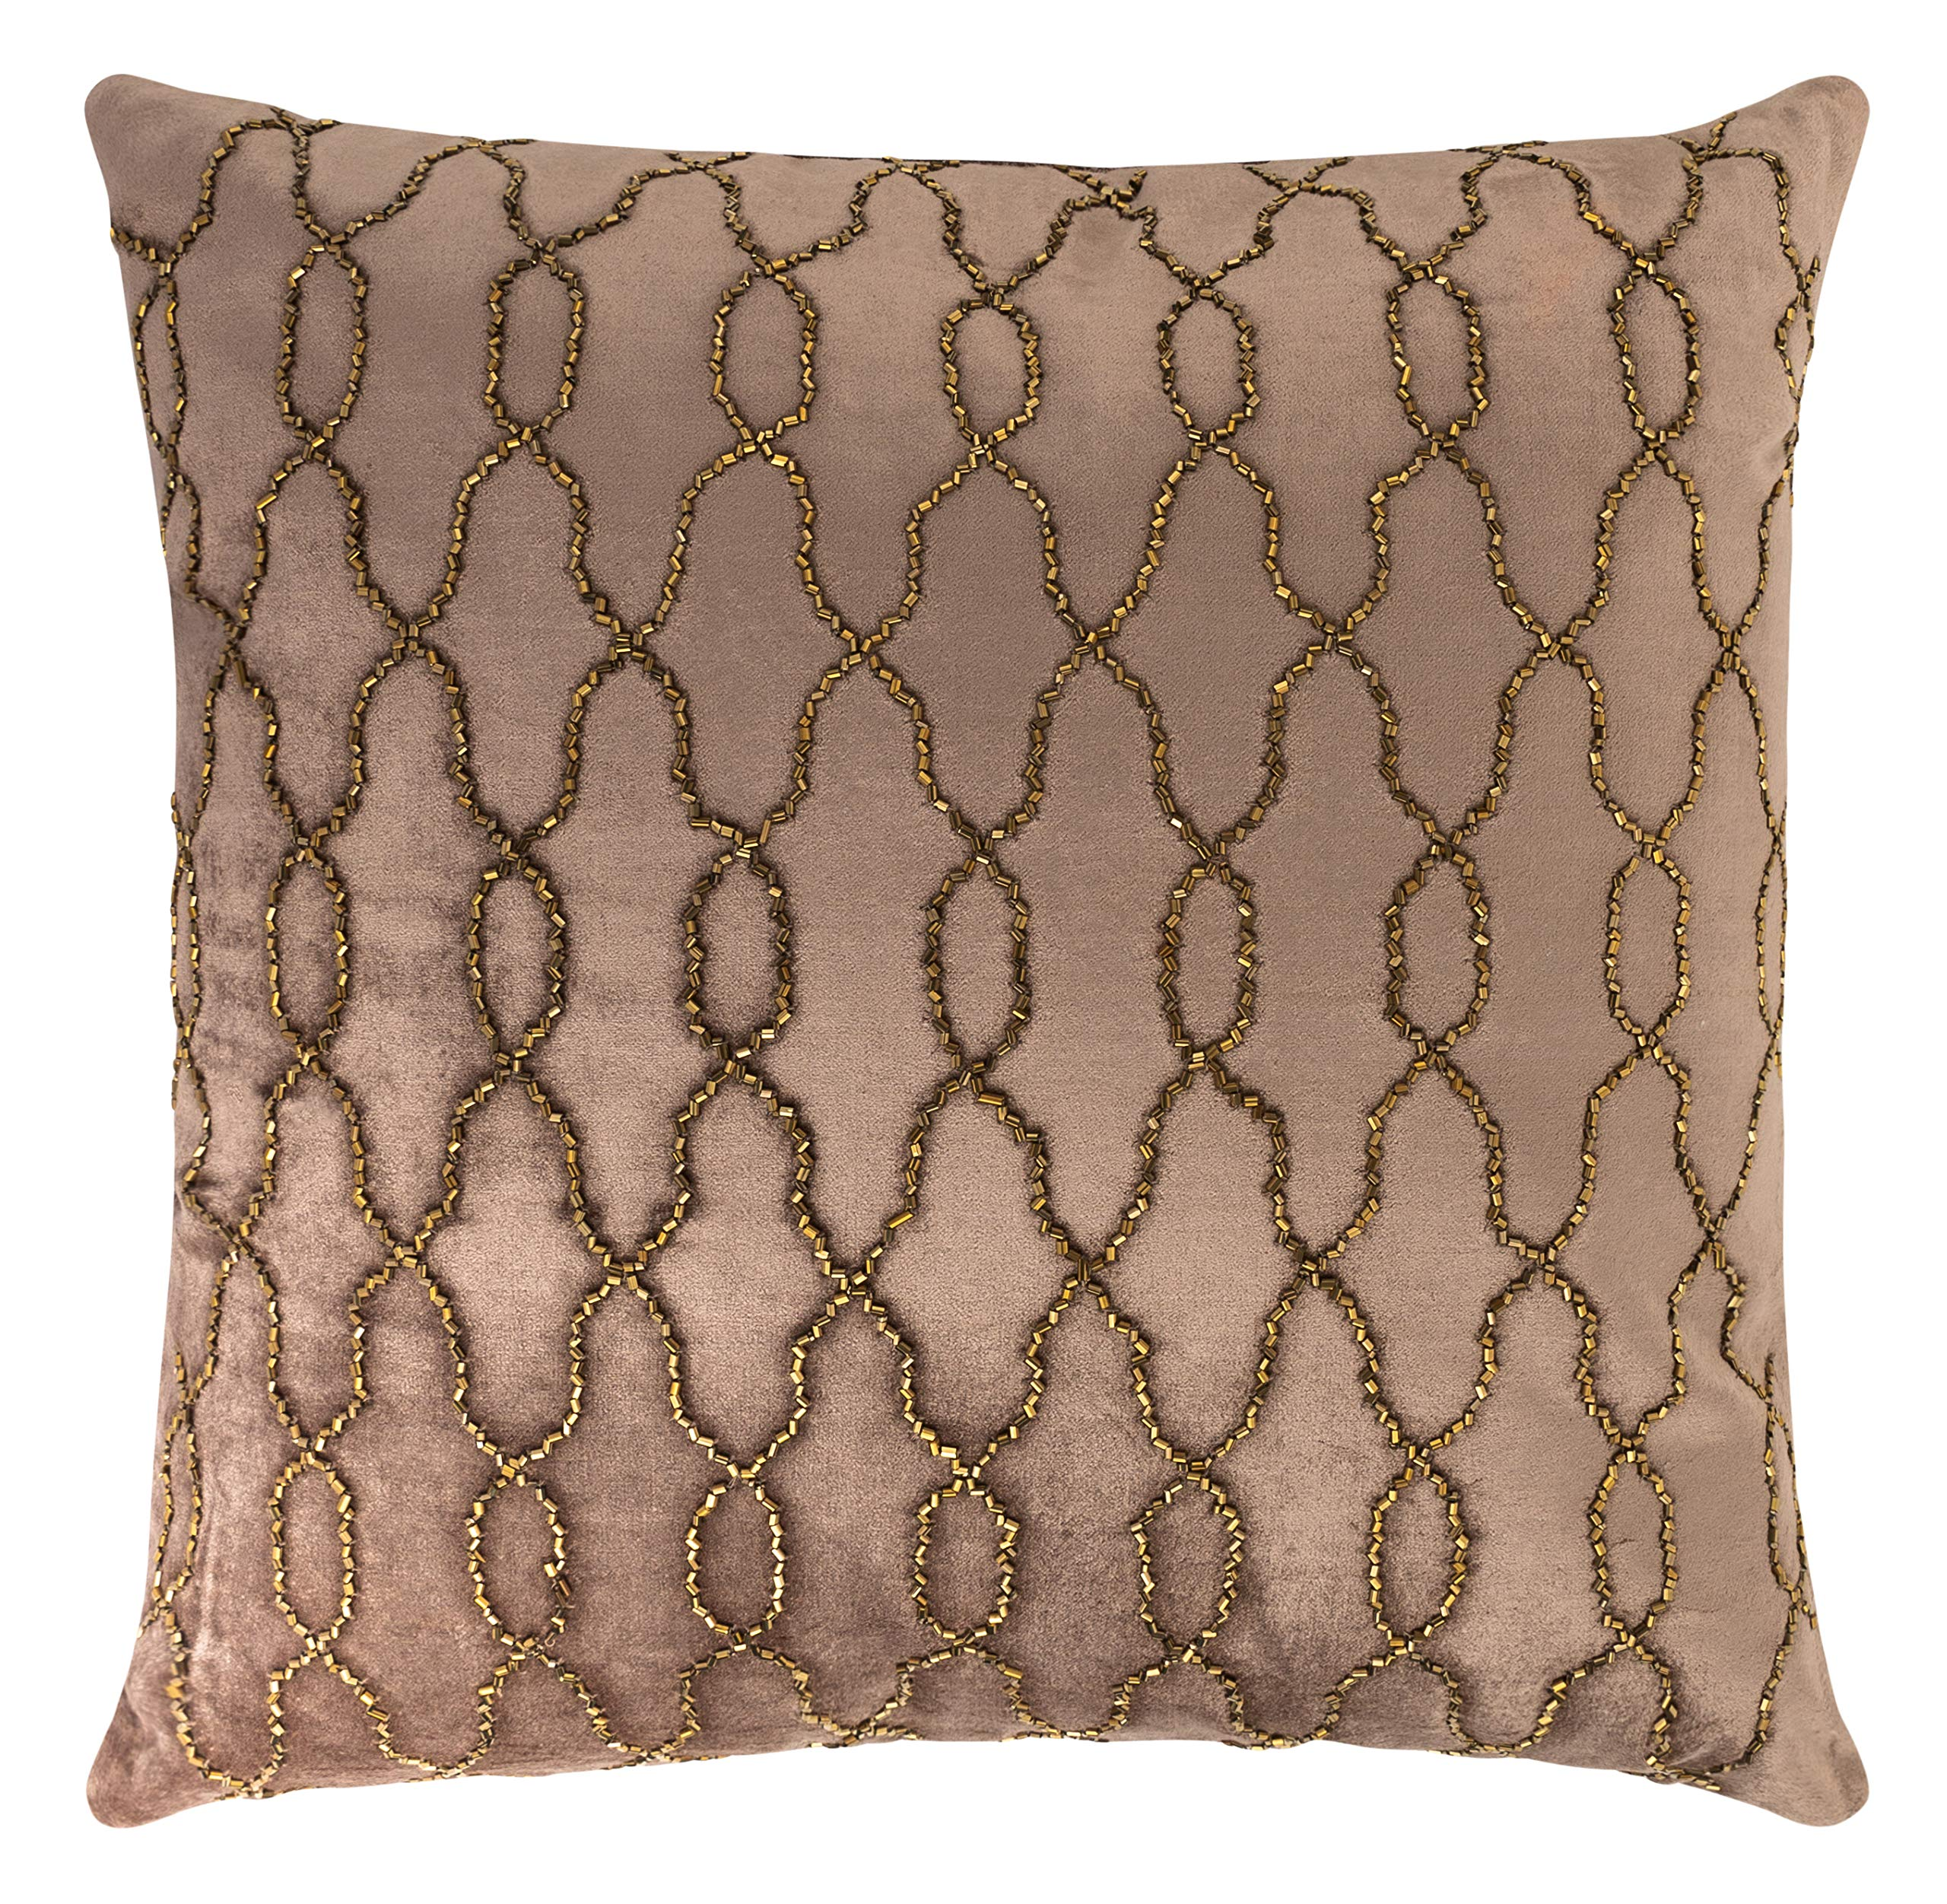 CDM product Forest & Twelfth Home Velvet Throw Pillows-Decorative Beaded Throw Pillows for Living Room & Bedroom with 100% Polyester Filling-Soft Cotton Blend Home Decor Pillows (Potato Brown/Copper, 18 x 18) big image